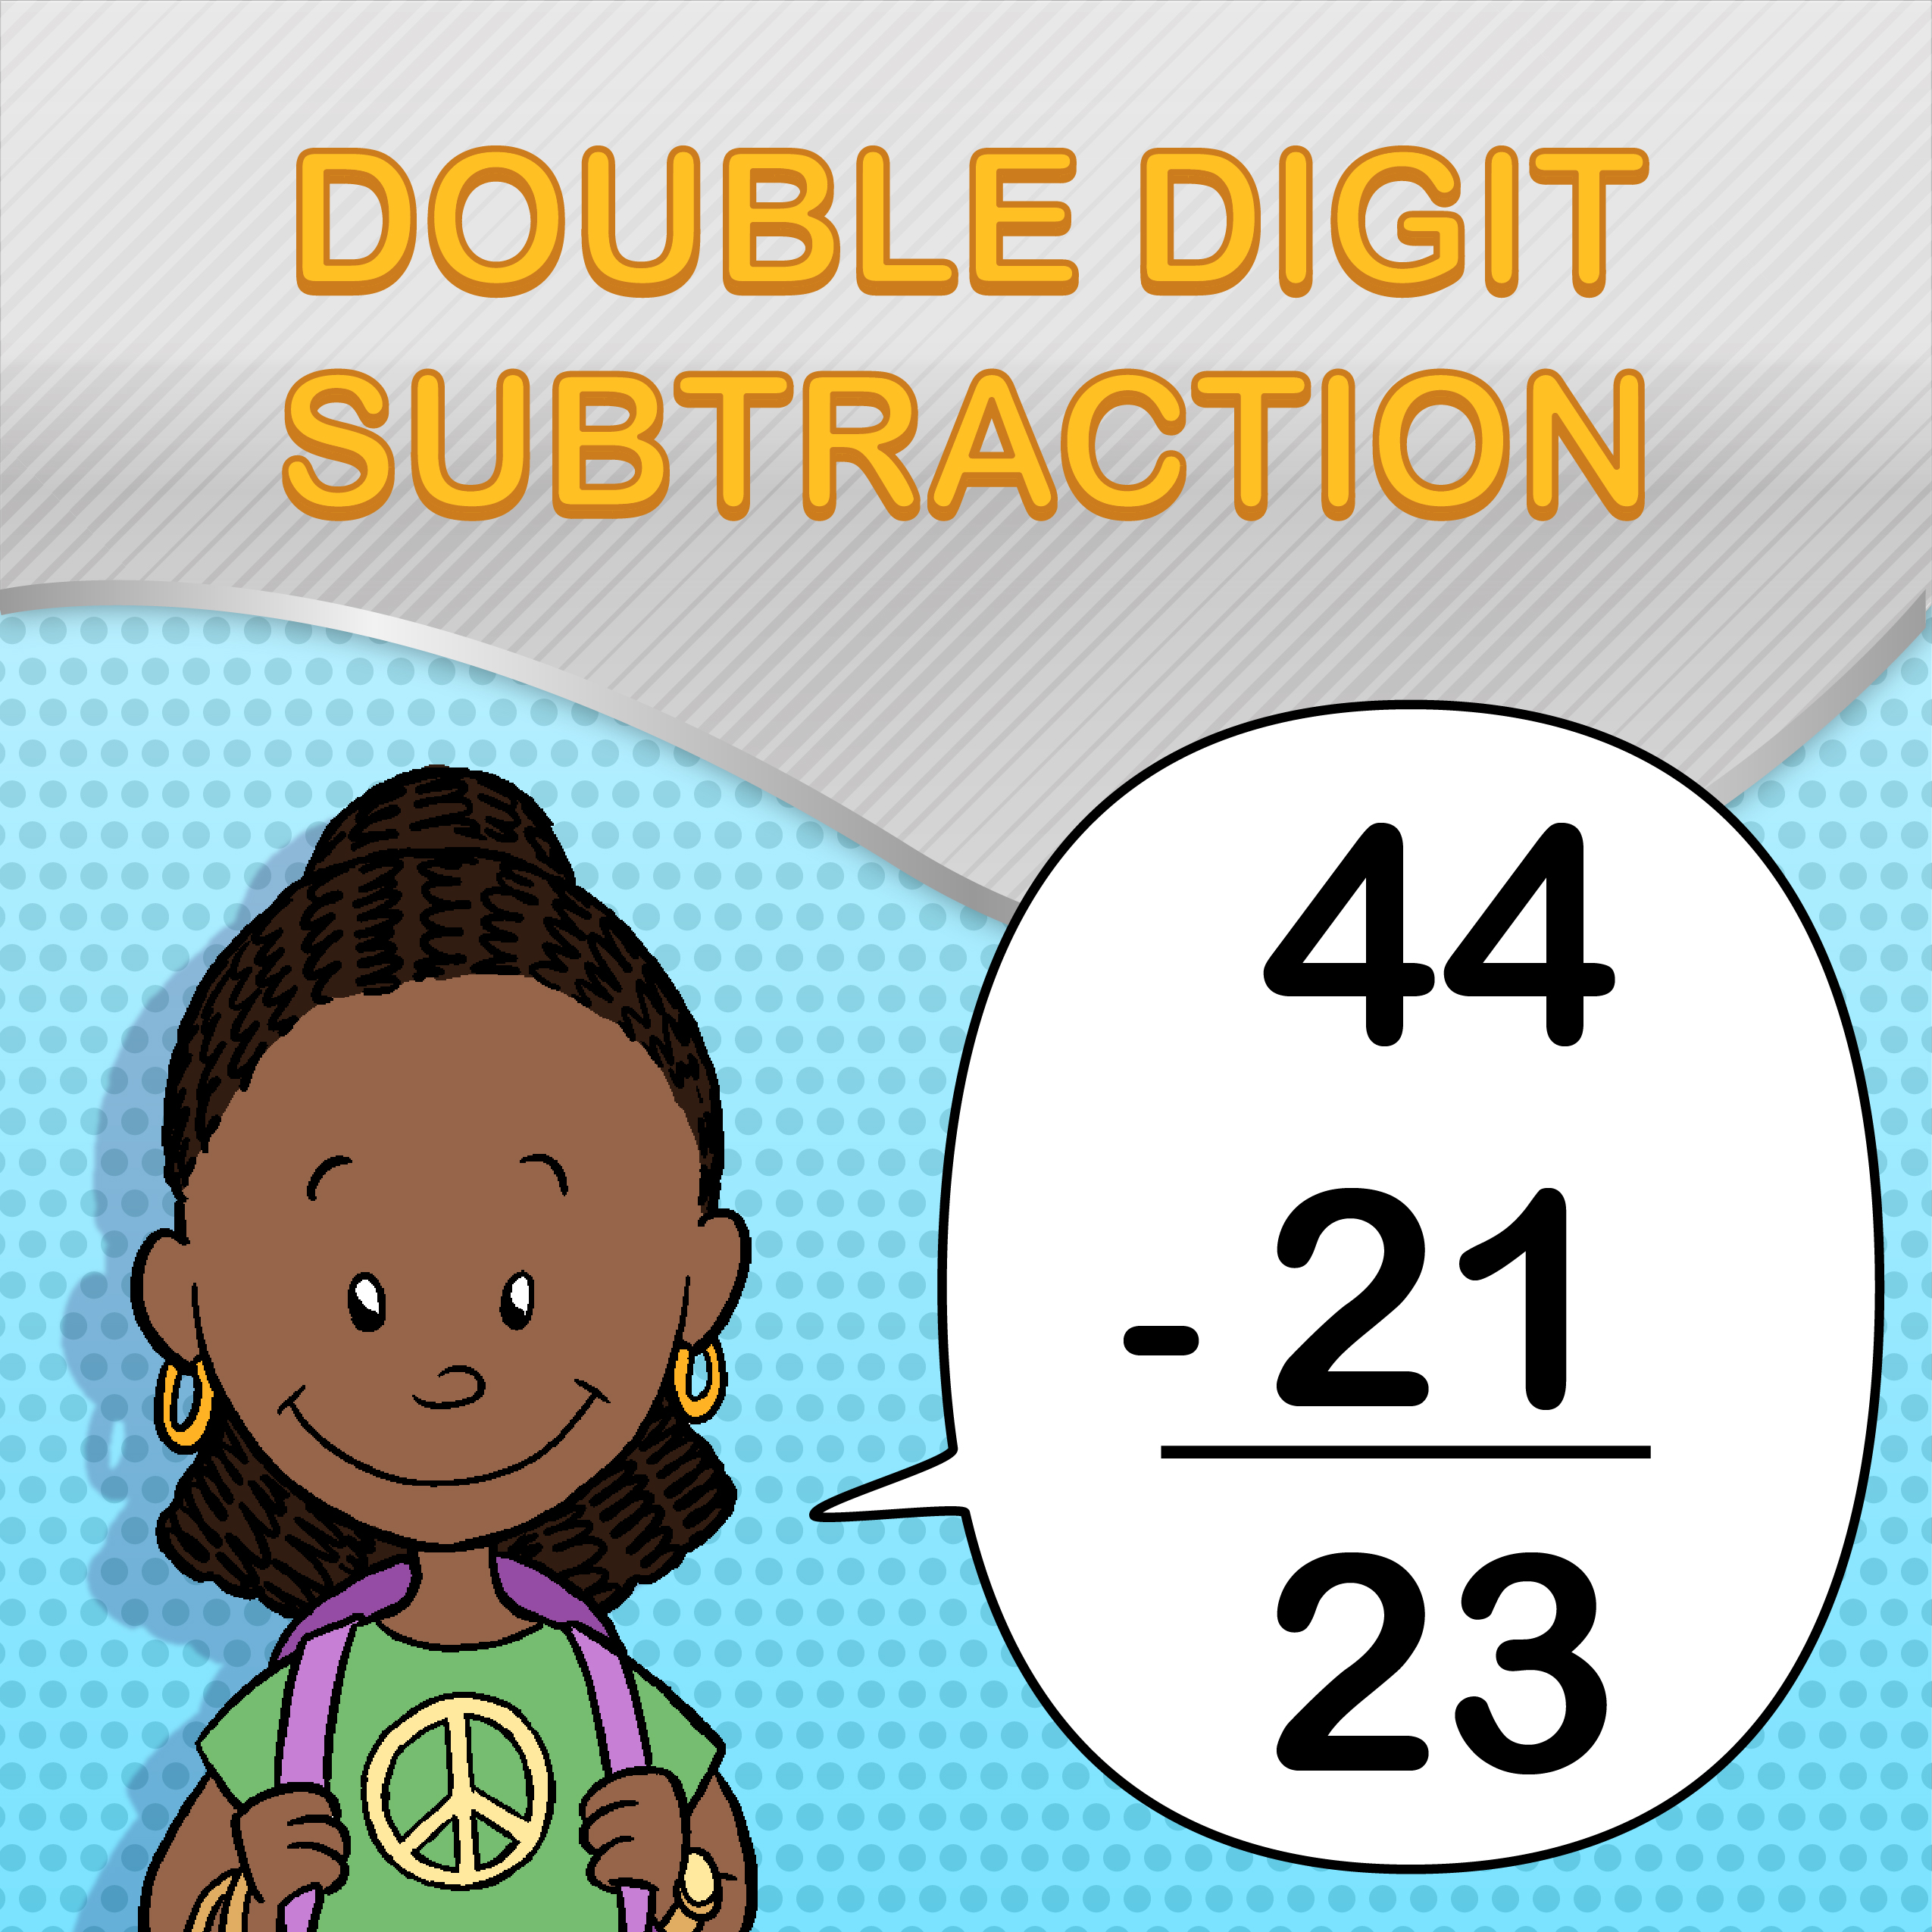 Coloring pages for double digit subtraction - Coloring Pages For Double Digit Subtraction 38